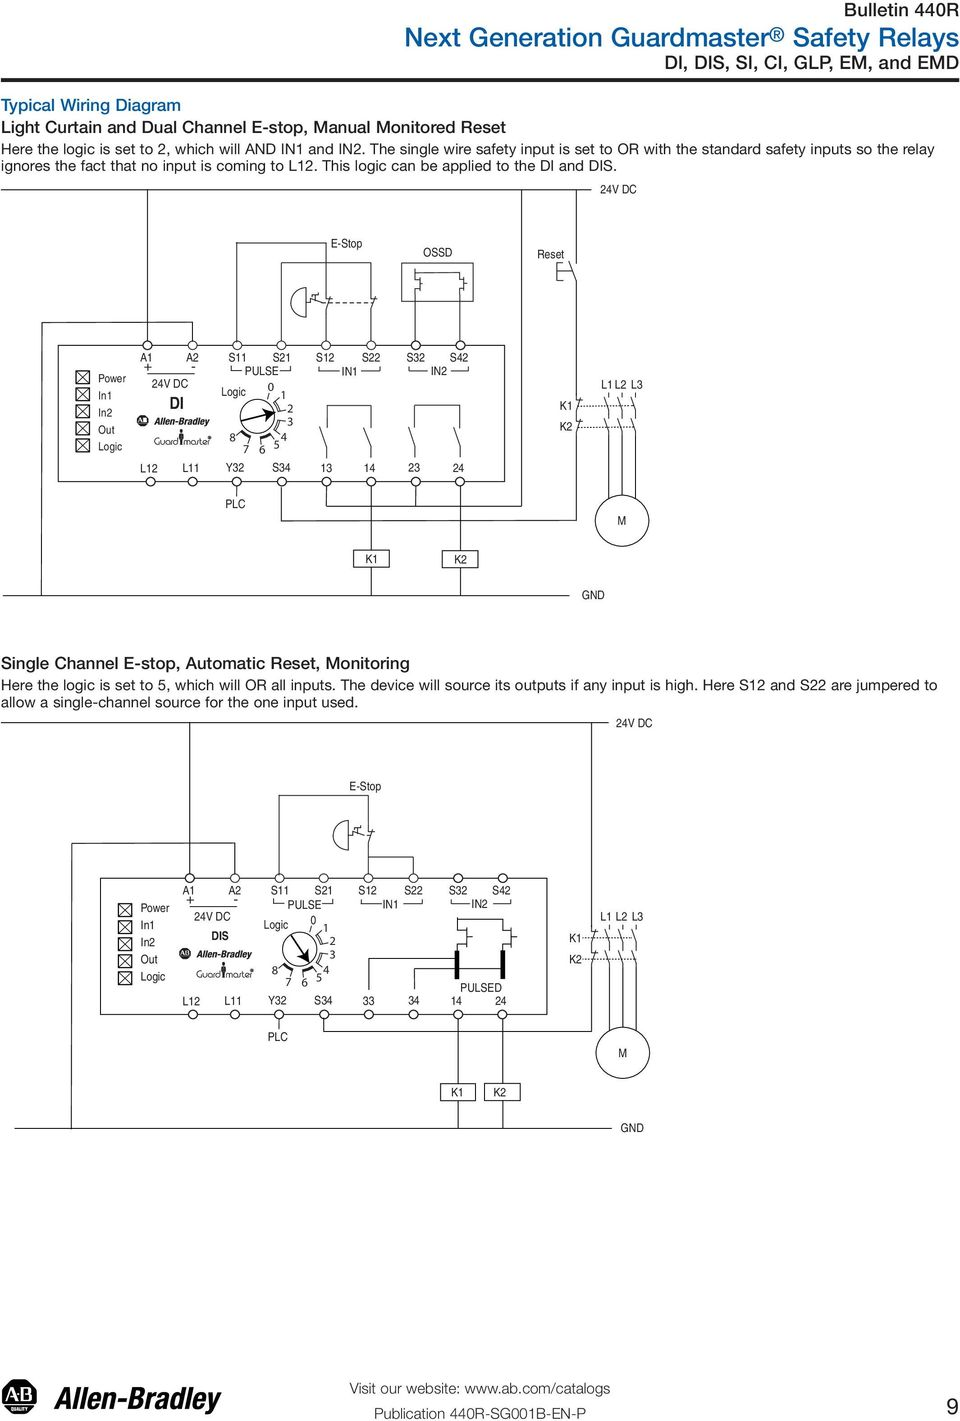 Wiring Diagram Safety Relay safety circuit safety relay ... on lucas relay wiring, allen bradley relay wiring, crydom relay wiring, siemens relay wiring, bosch relay wiring, idec relay wiring, finder relay wiring,